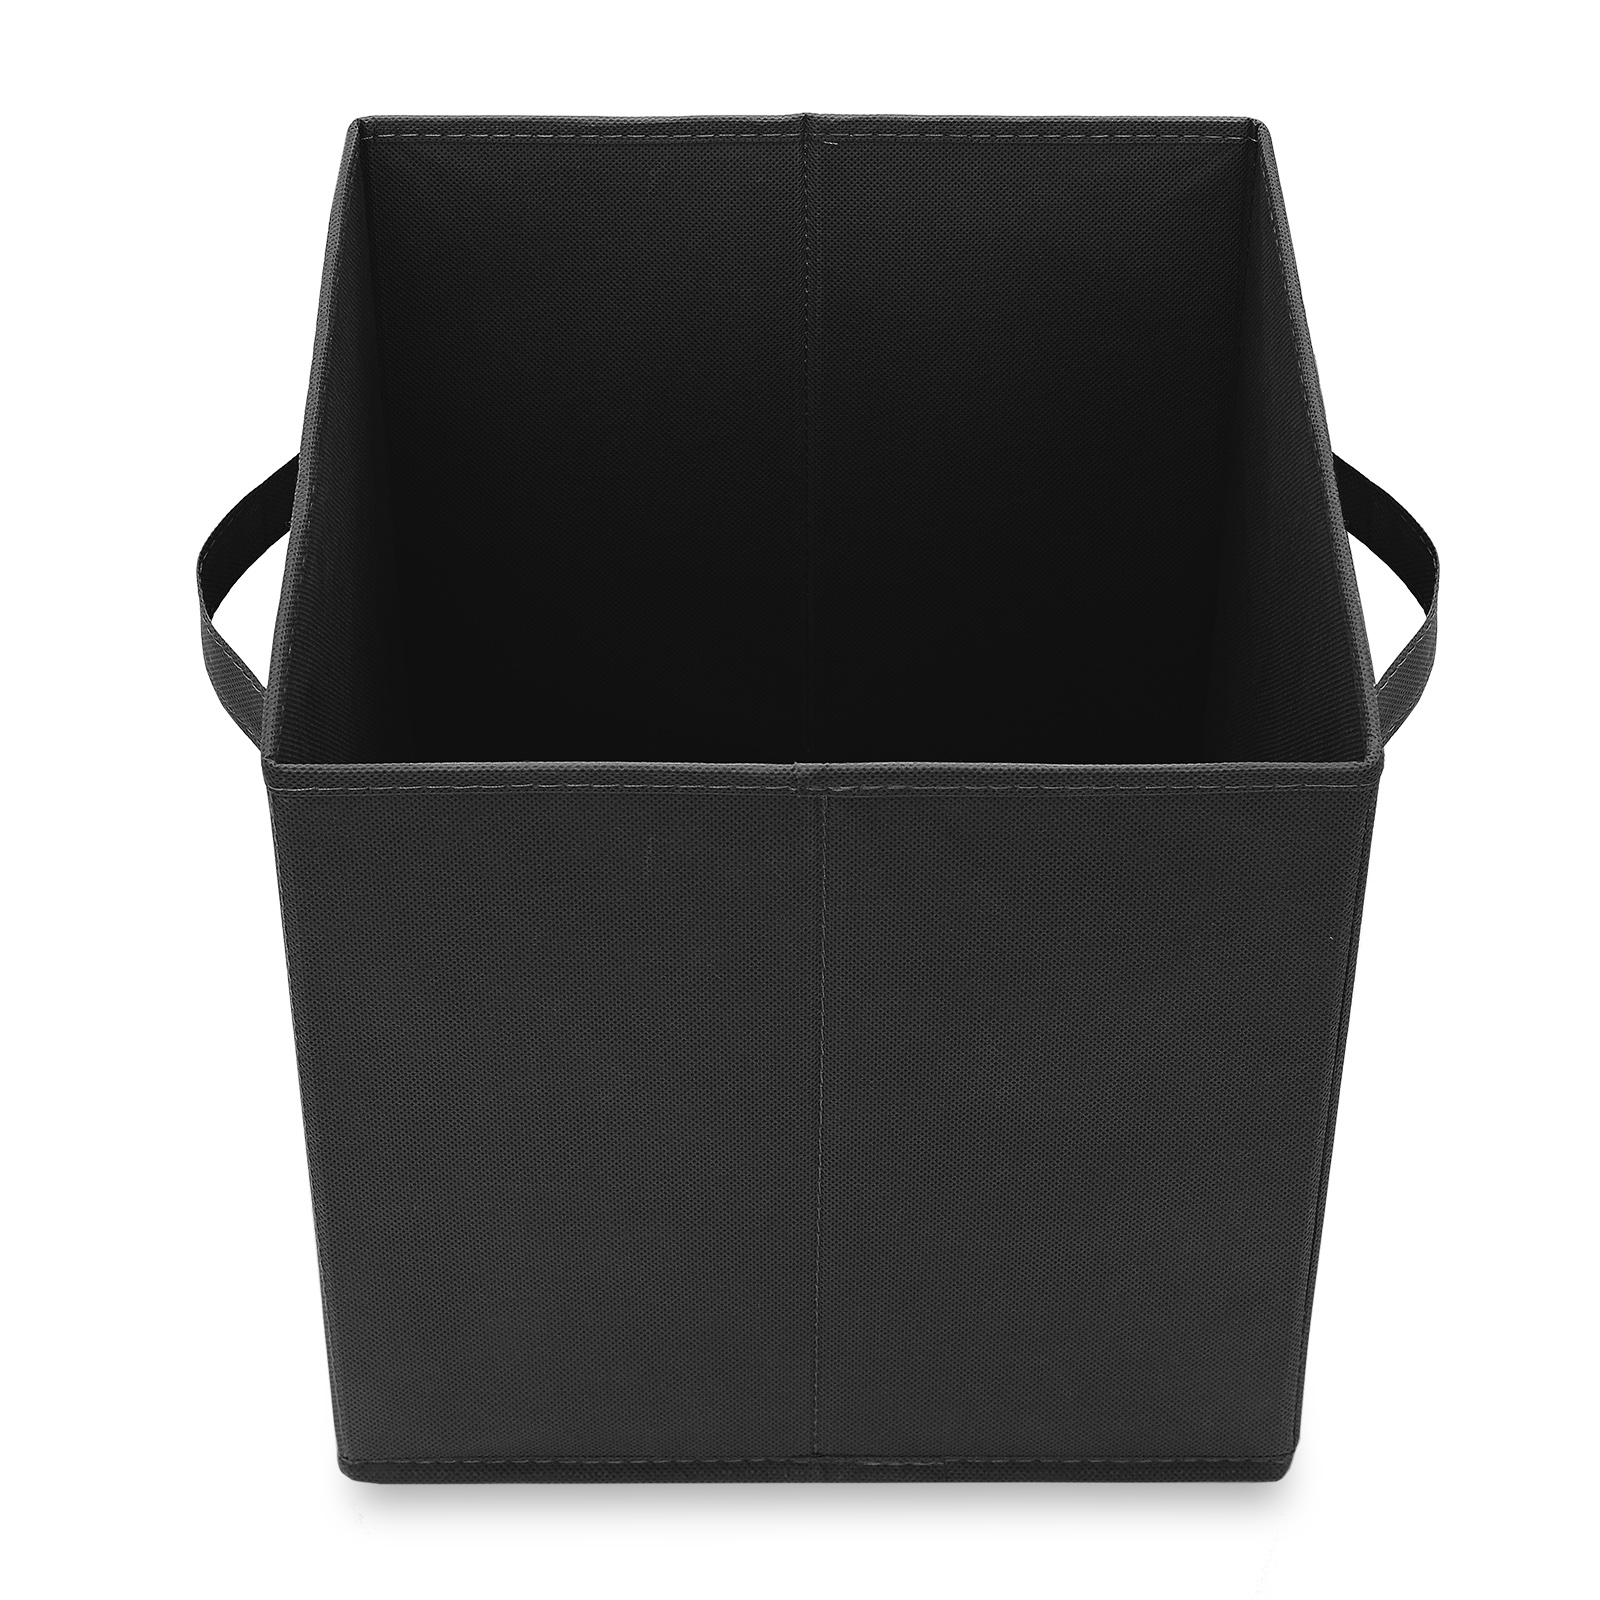 6-Collapsible-Foldable-Cloth-Fabric-Cubby-Cube-Storage-Bins-Baskets-for-Shelves thumbnail 12